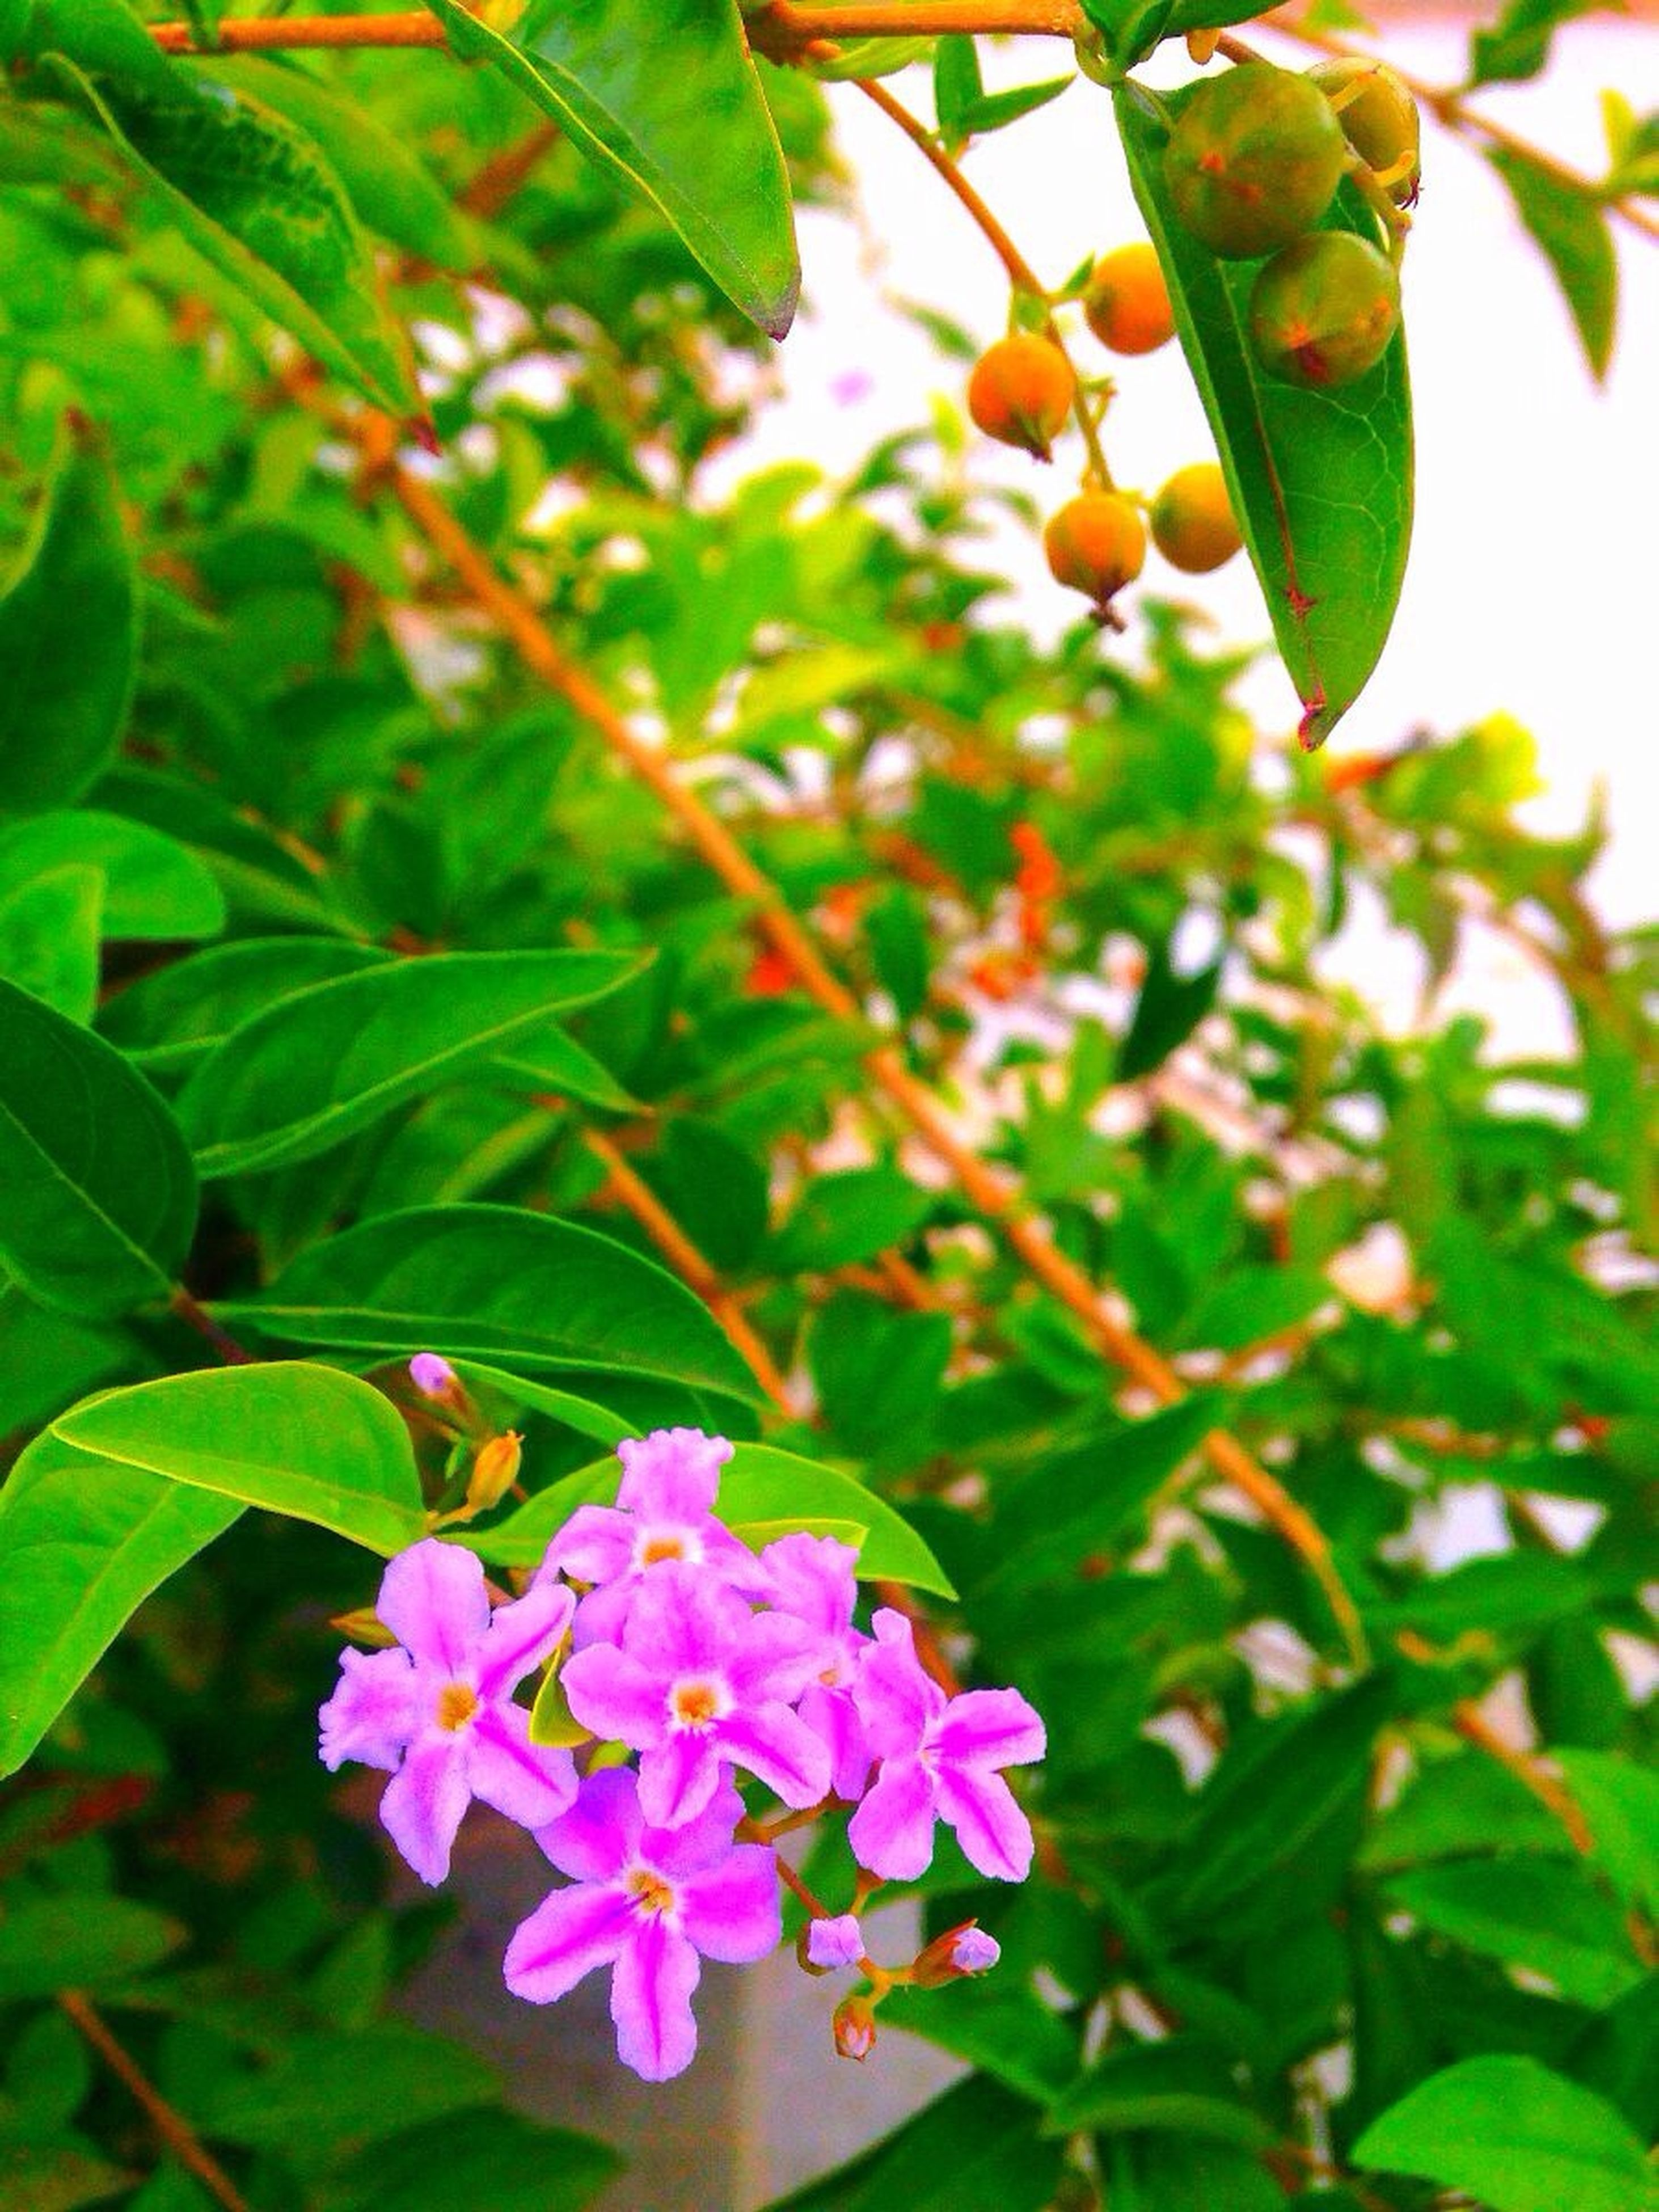 flower, freshness, growth, leaf, fragility, petal, beauty in nature, nature, flower head, plant, blooming, focus on foreground, close-up, green color, pink color, blossom, in bloom, branch, insect, day